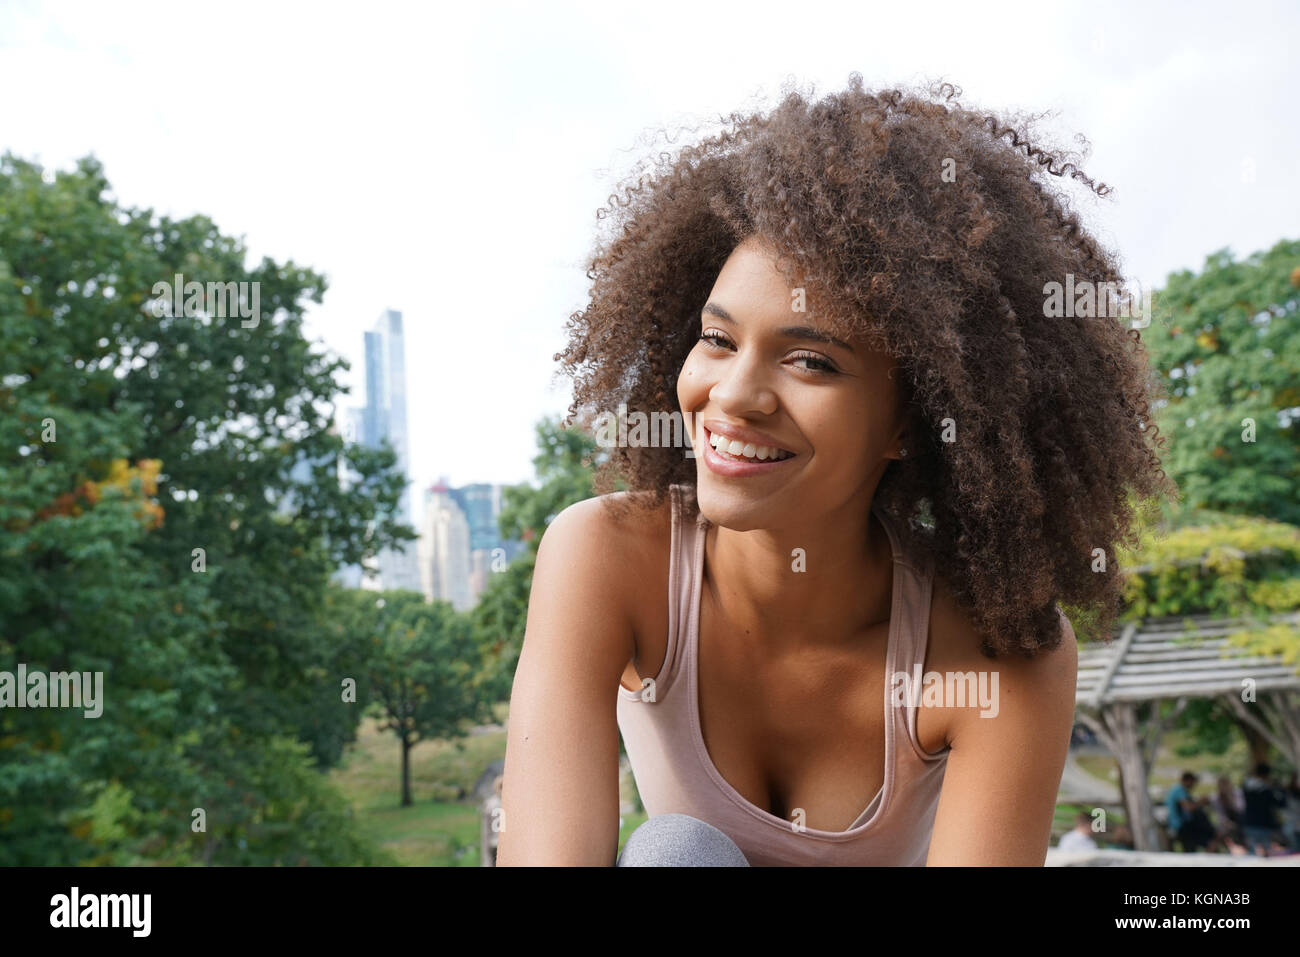 Beautiful woman doing relaxation exercises at Central Park - Stock Image